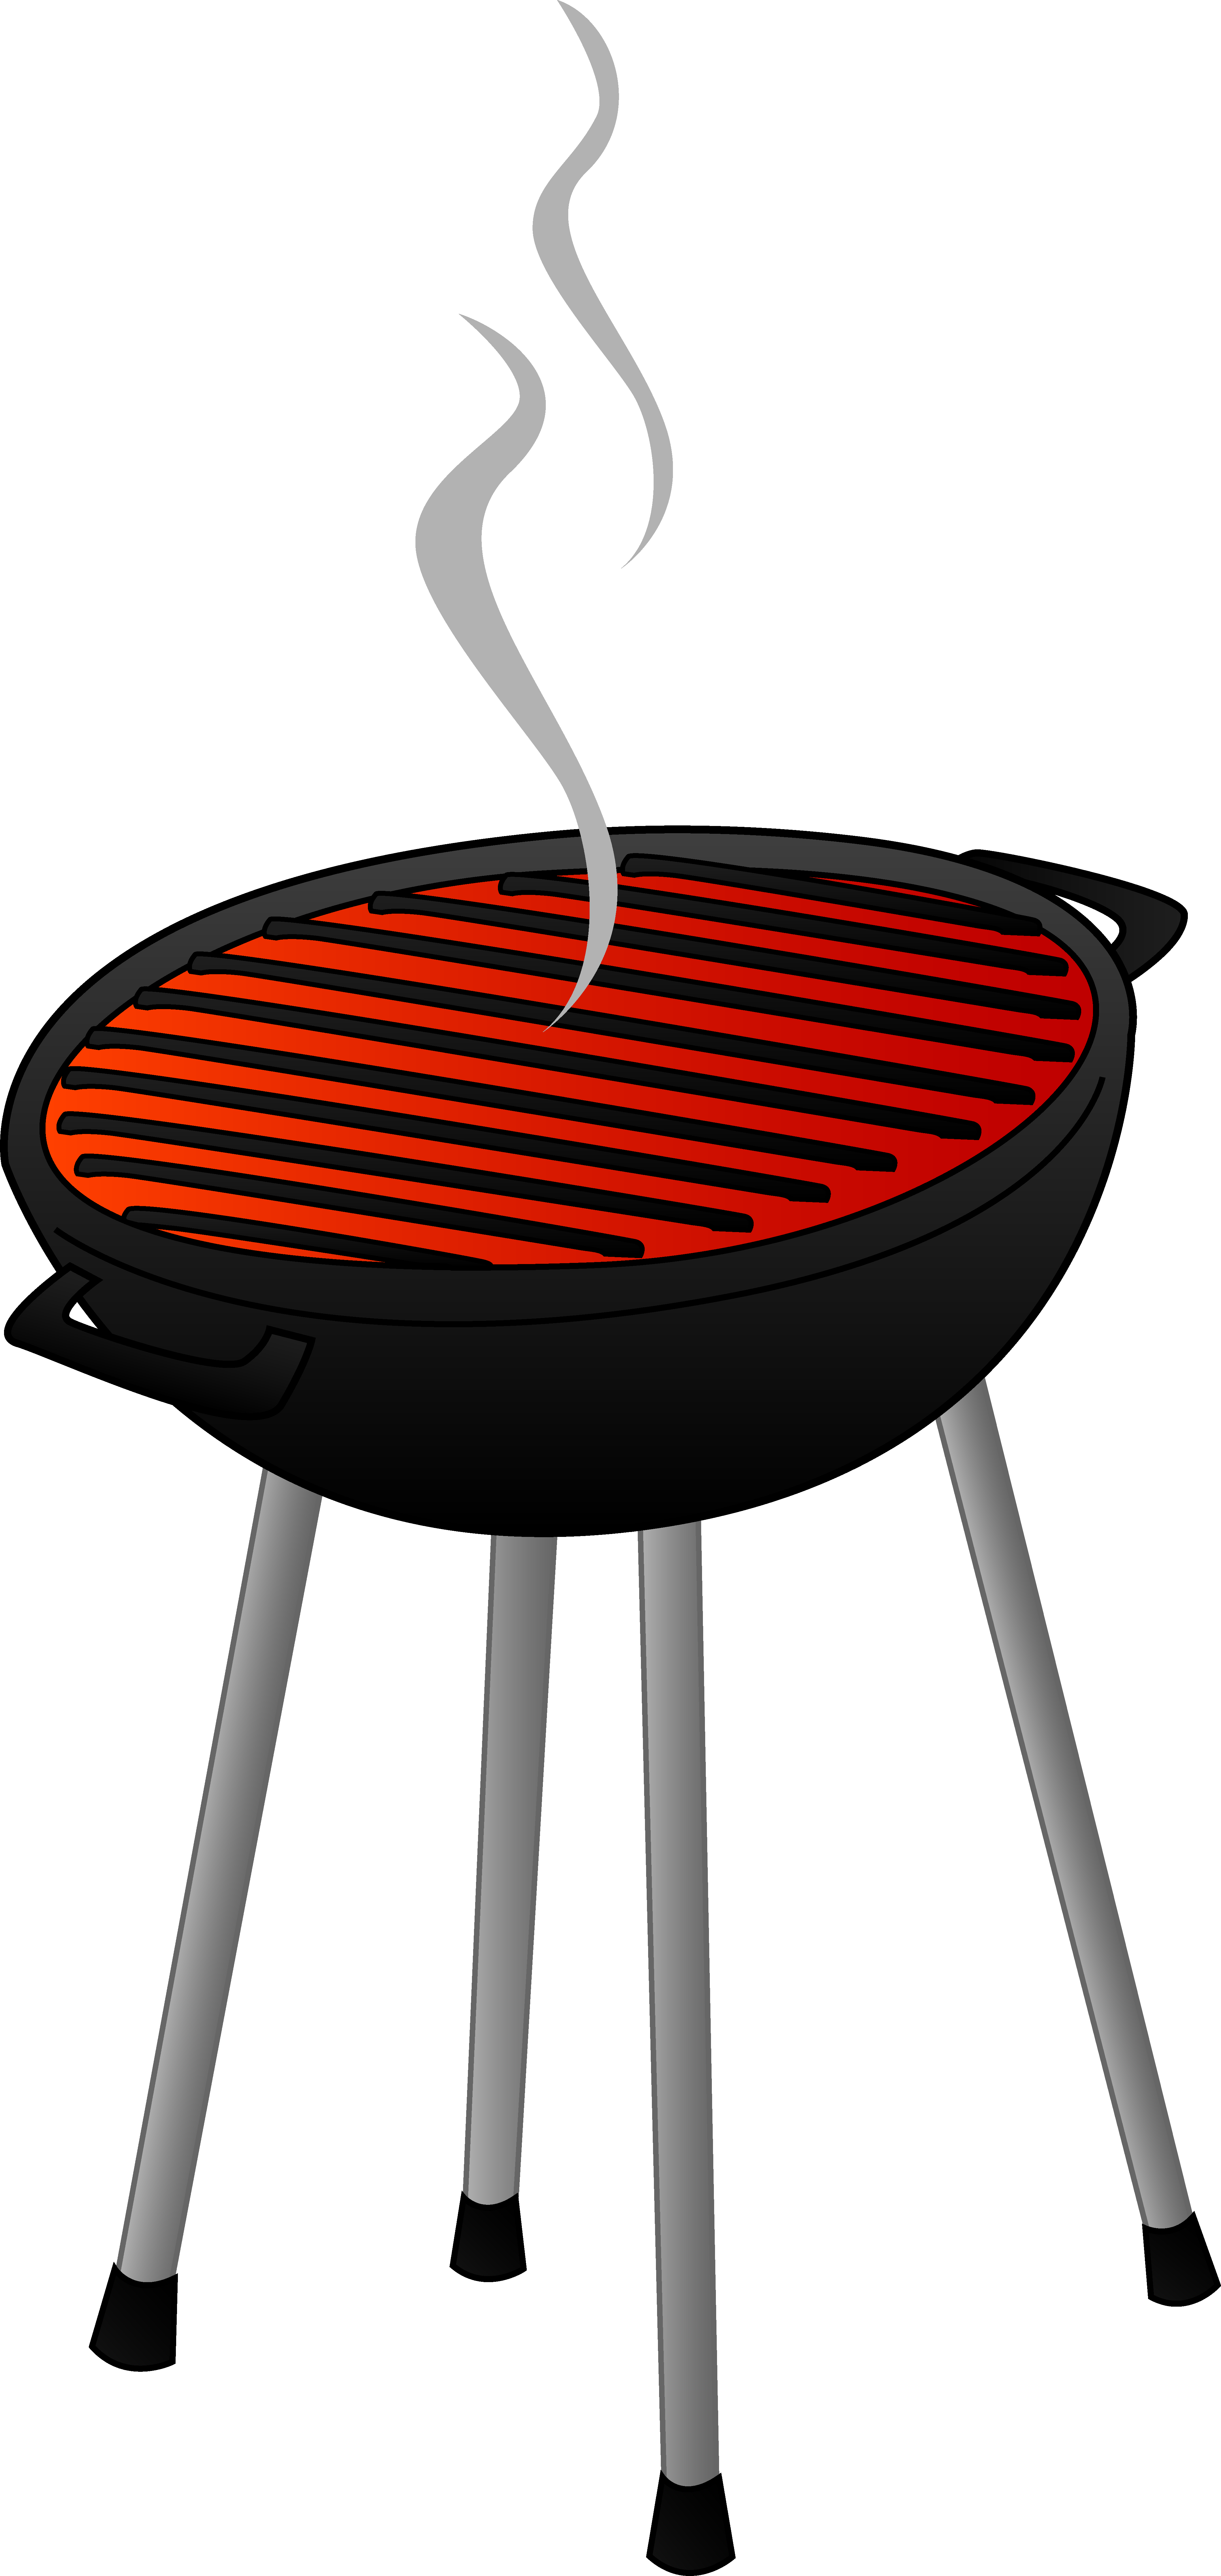 clip free Family bbq panda free. Grilled clipart.